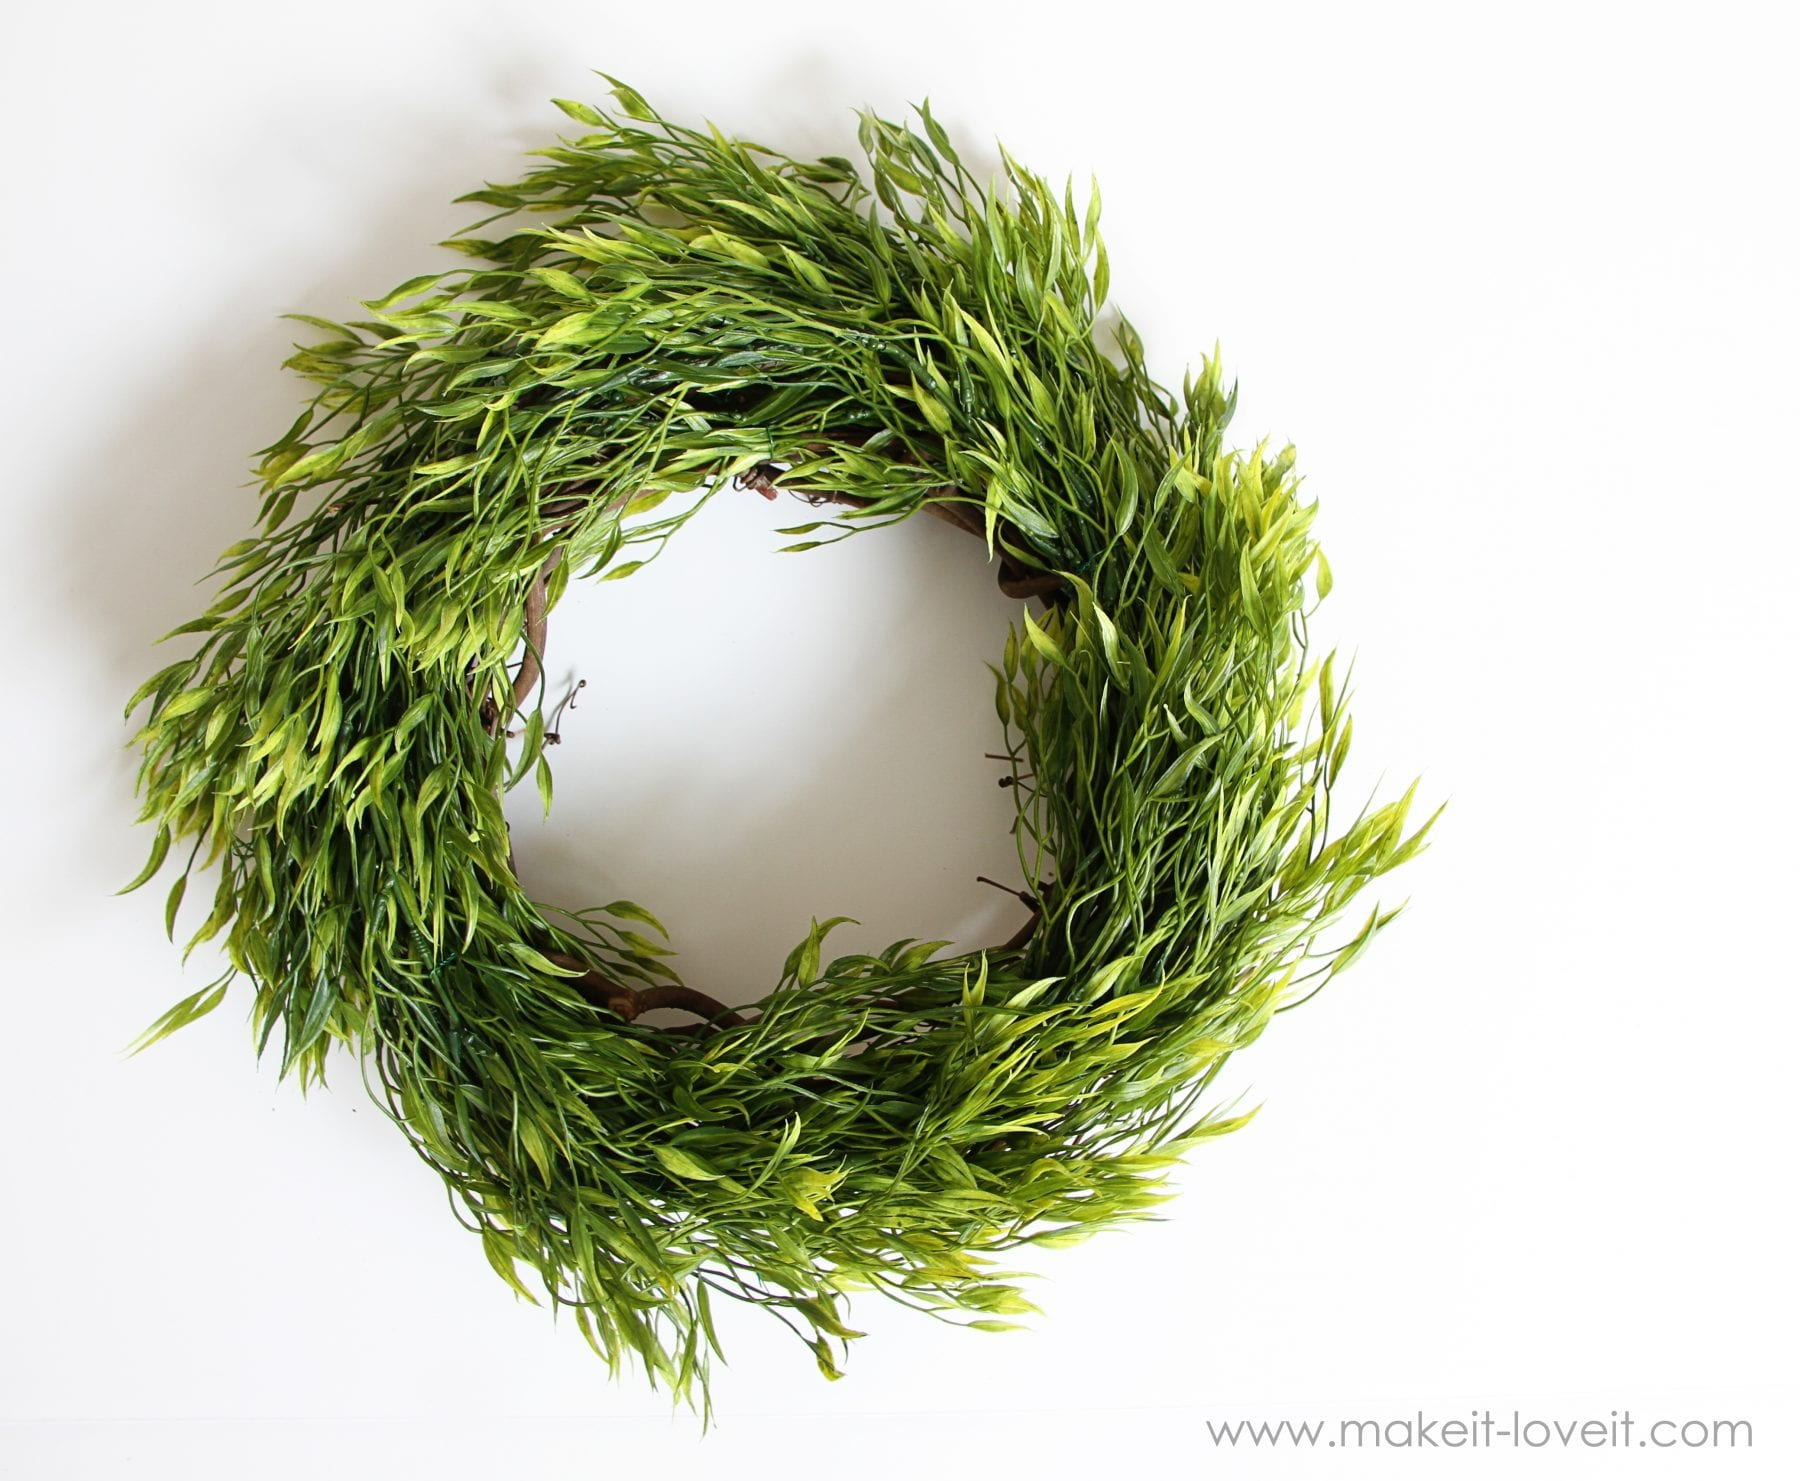 Home Decor: Leafy Foliage Wreath